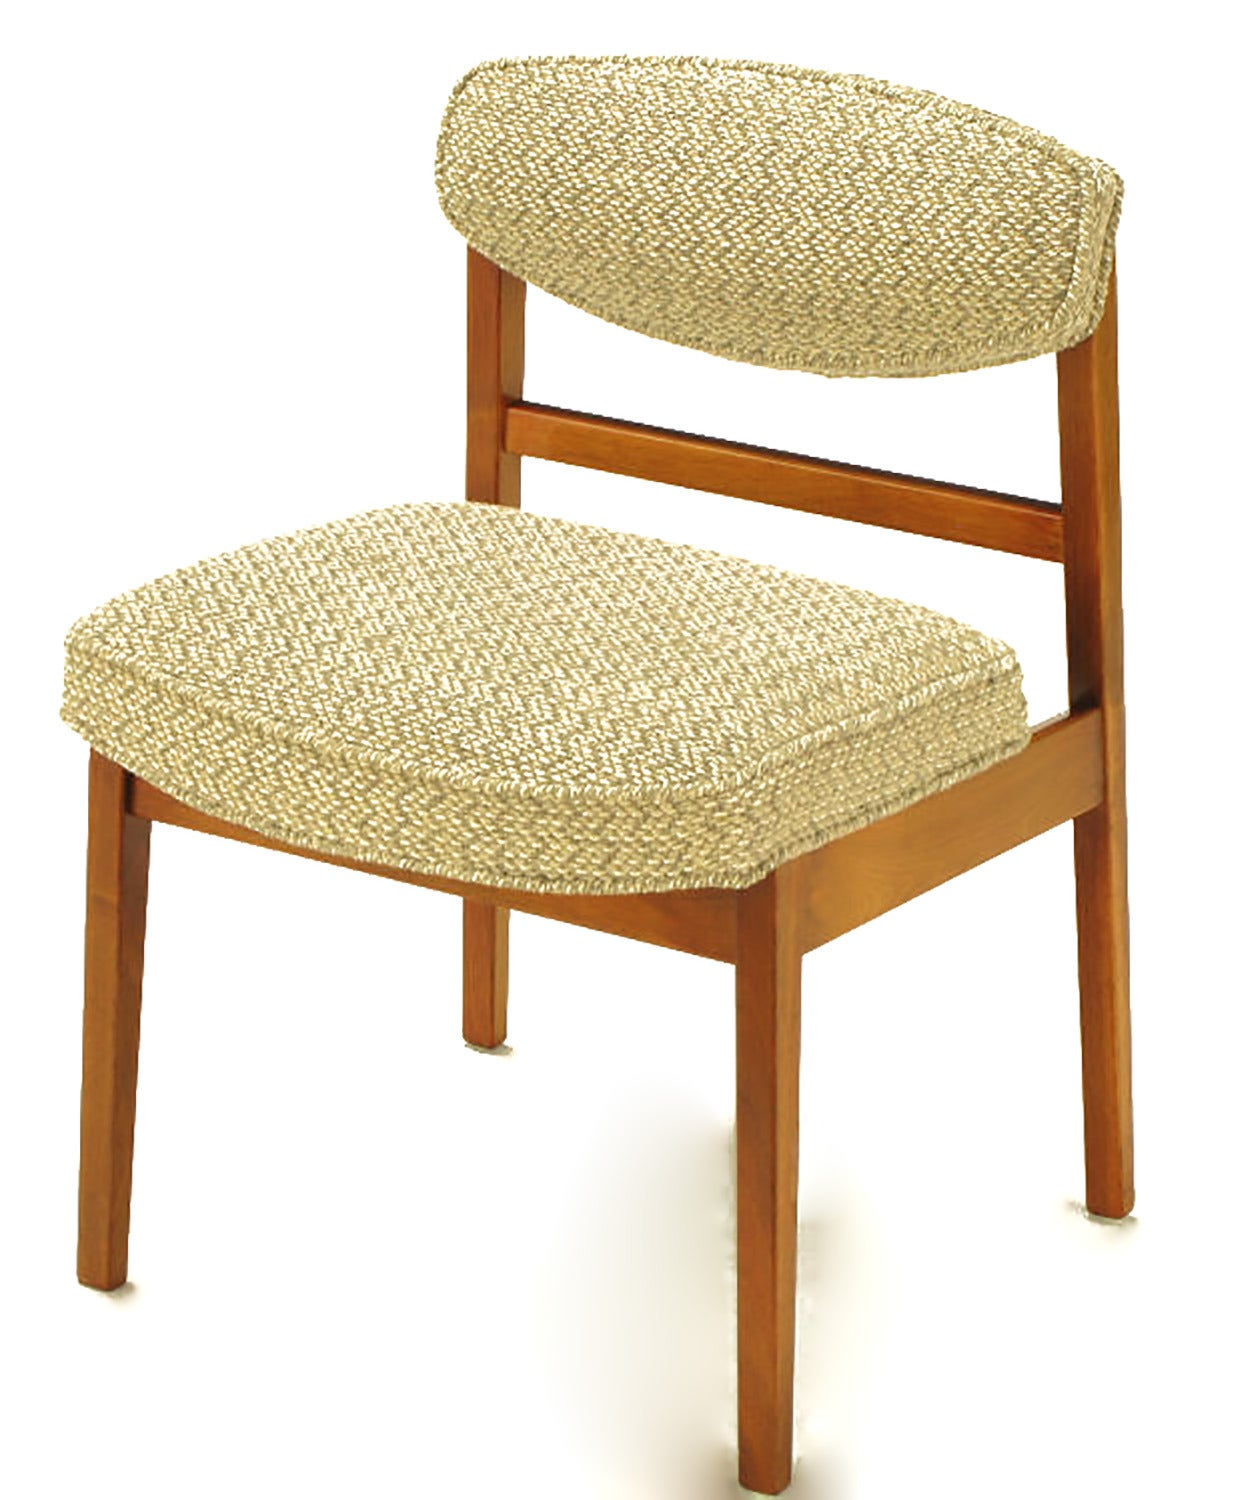 American Eight George Nelson for Herman Miller Teak Dining Chairs For Sale